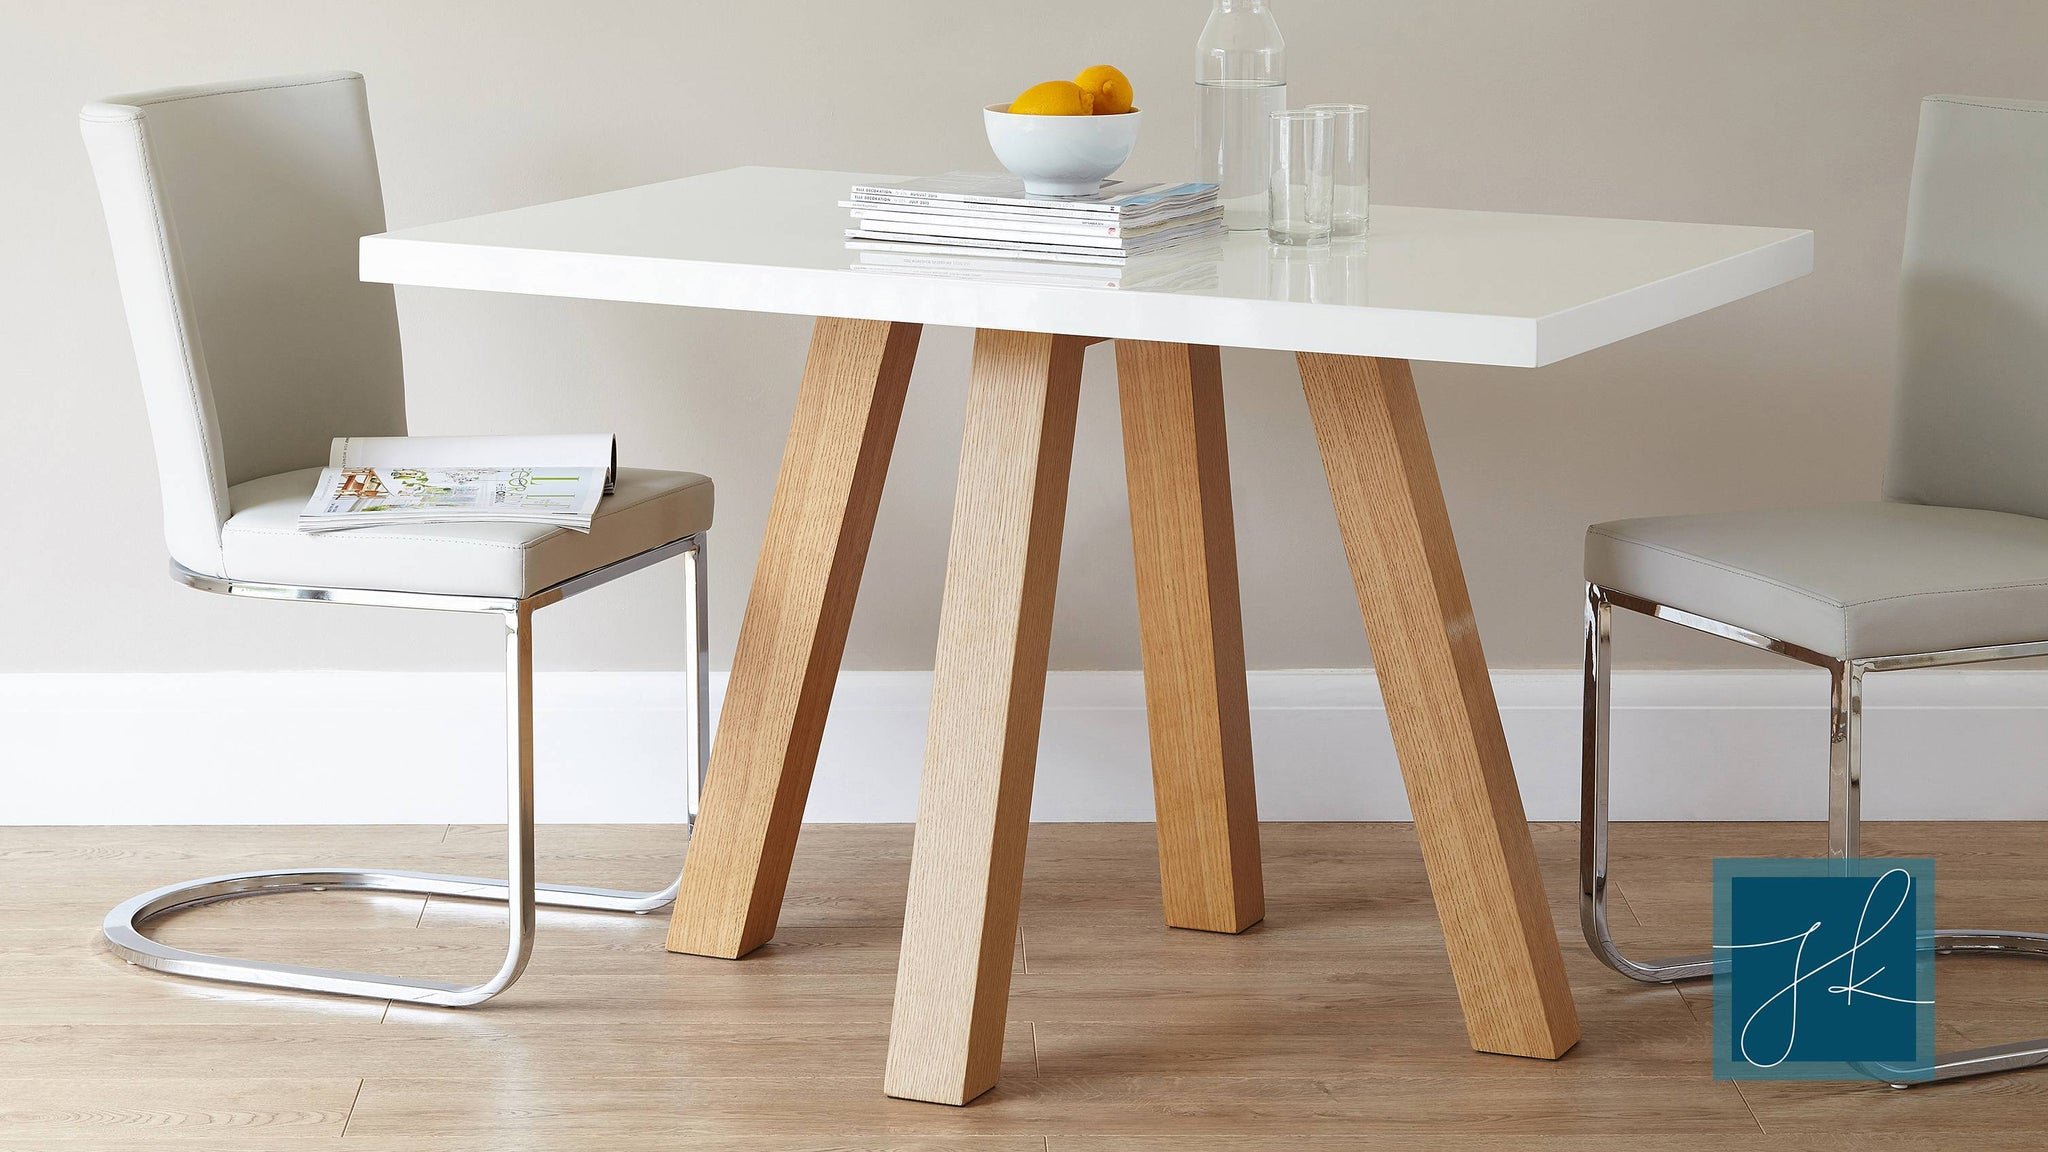 white gloss and wood veneer dining table Exclusively Danetti with Julia Kendell